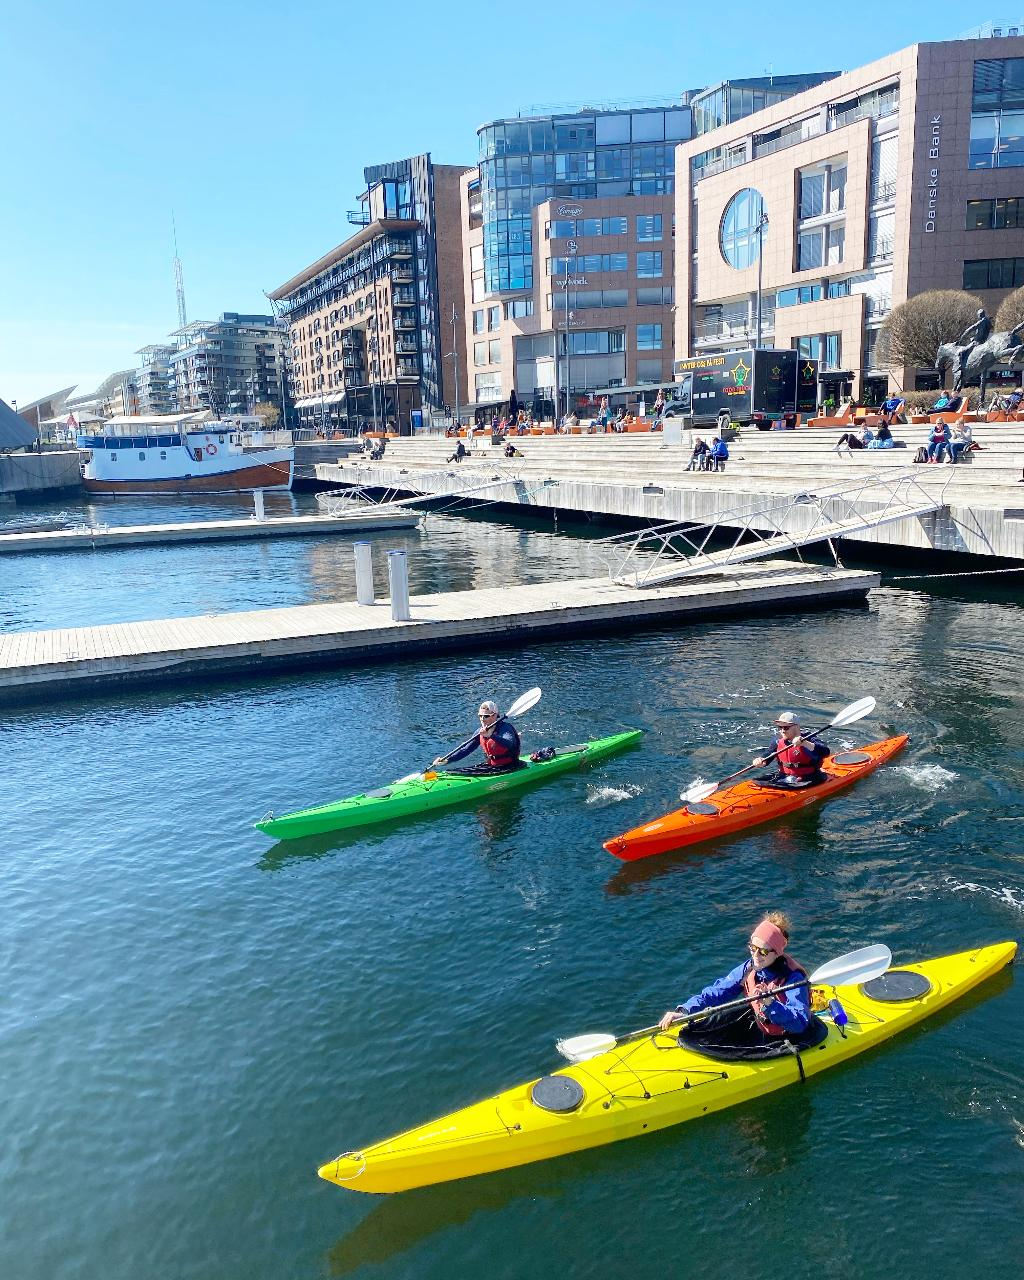 Sea Kayaking - Introduction Course - Aker Brygge